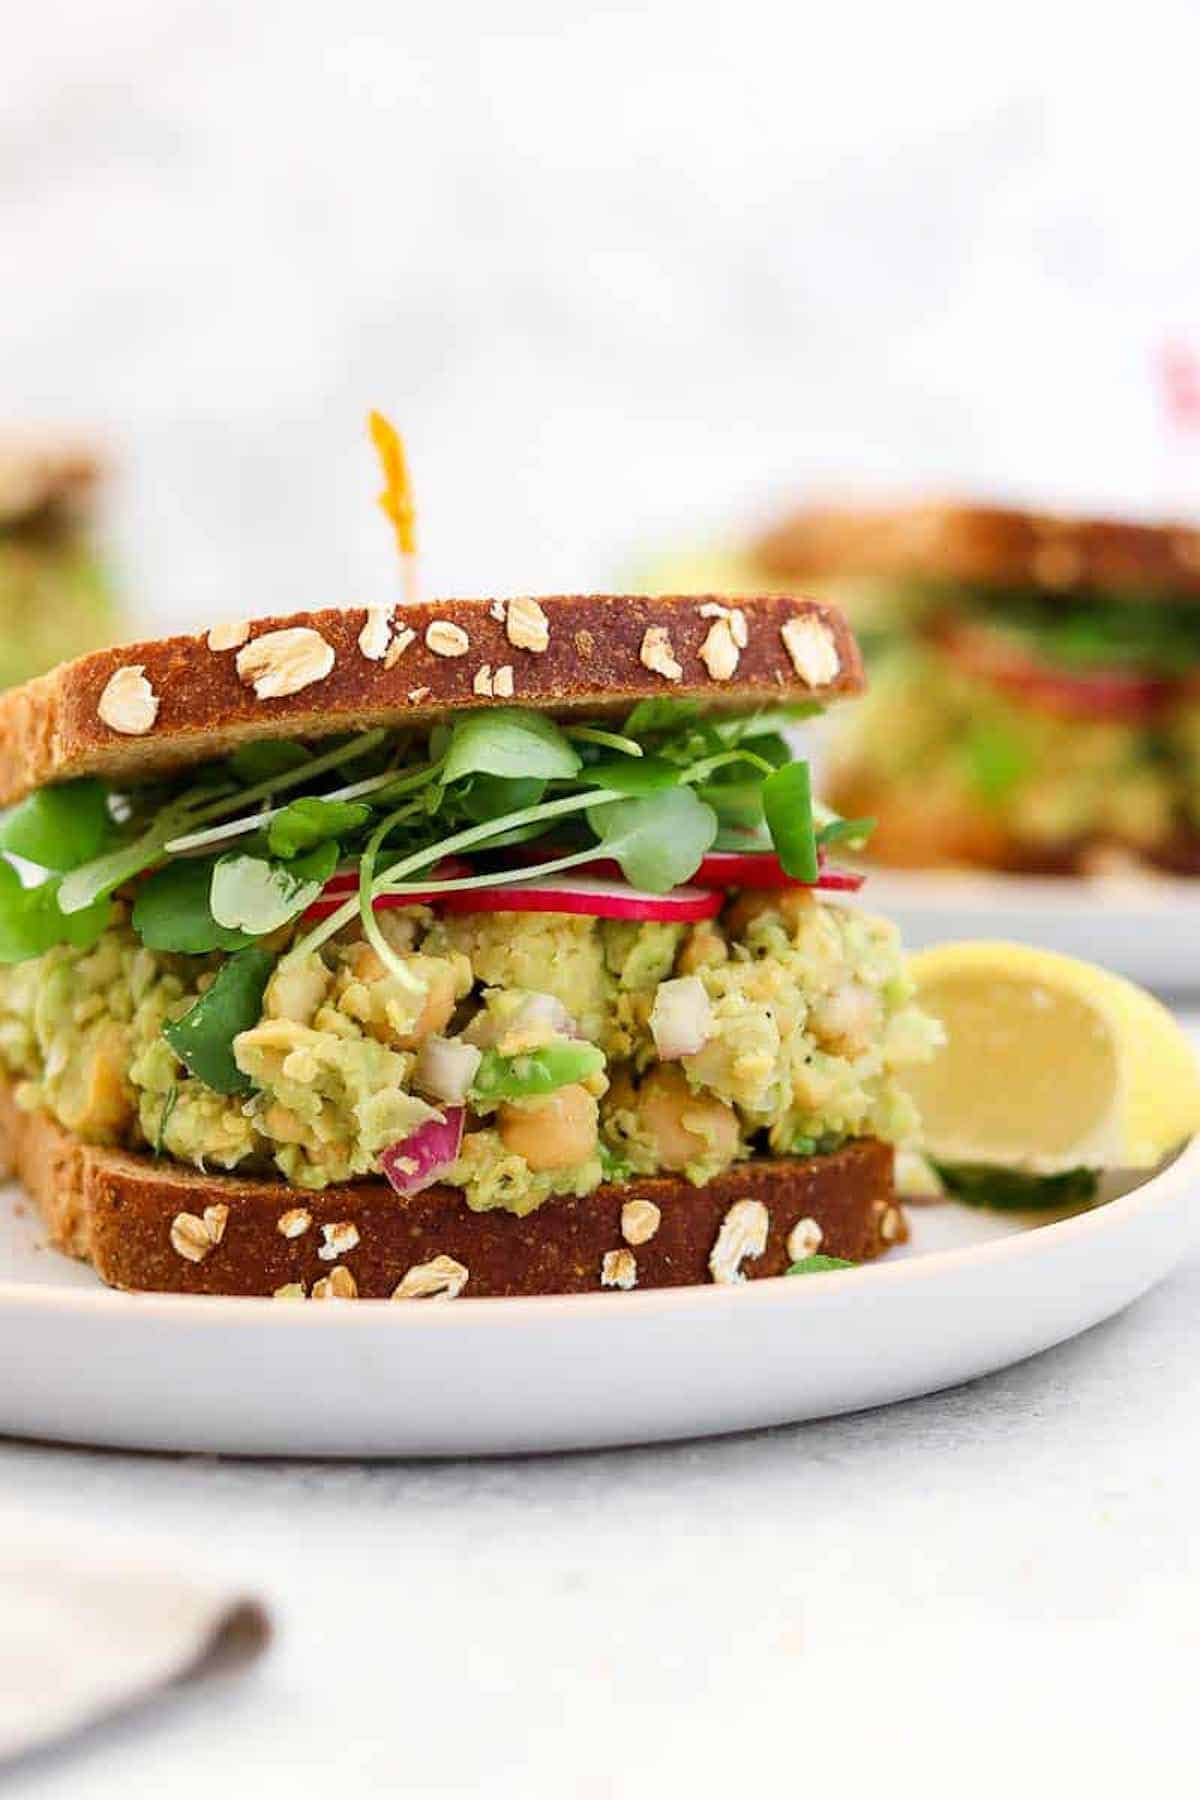 Chickpea avocado salad with radishes on bread.